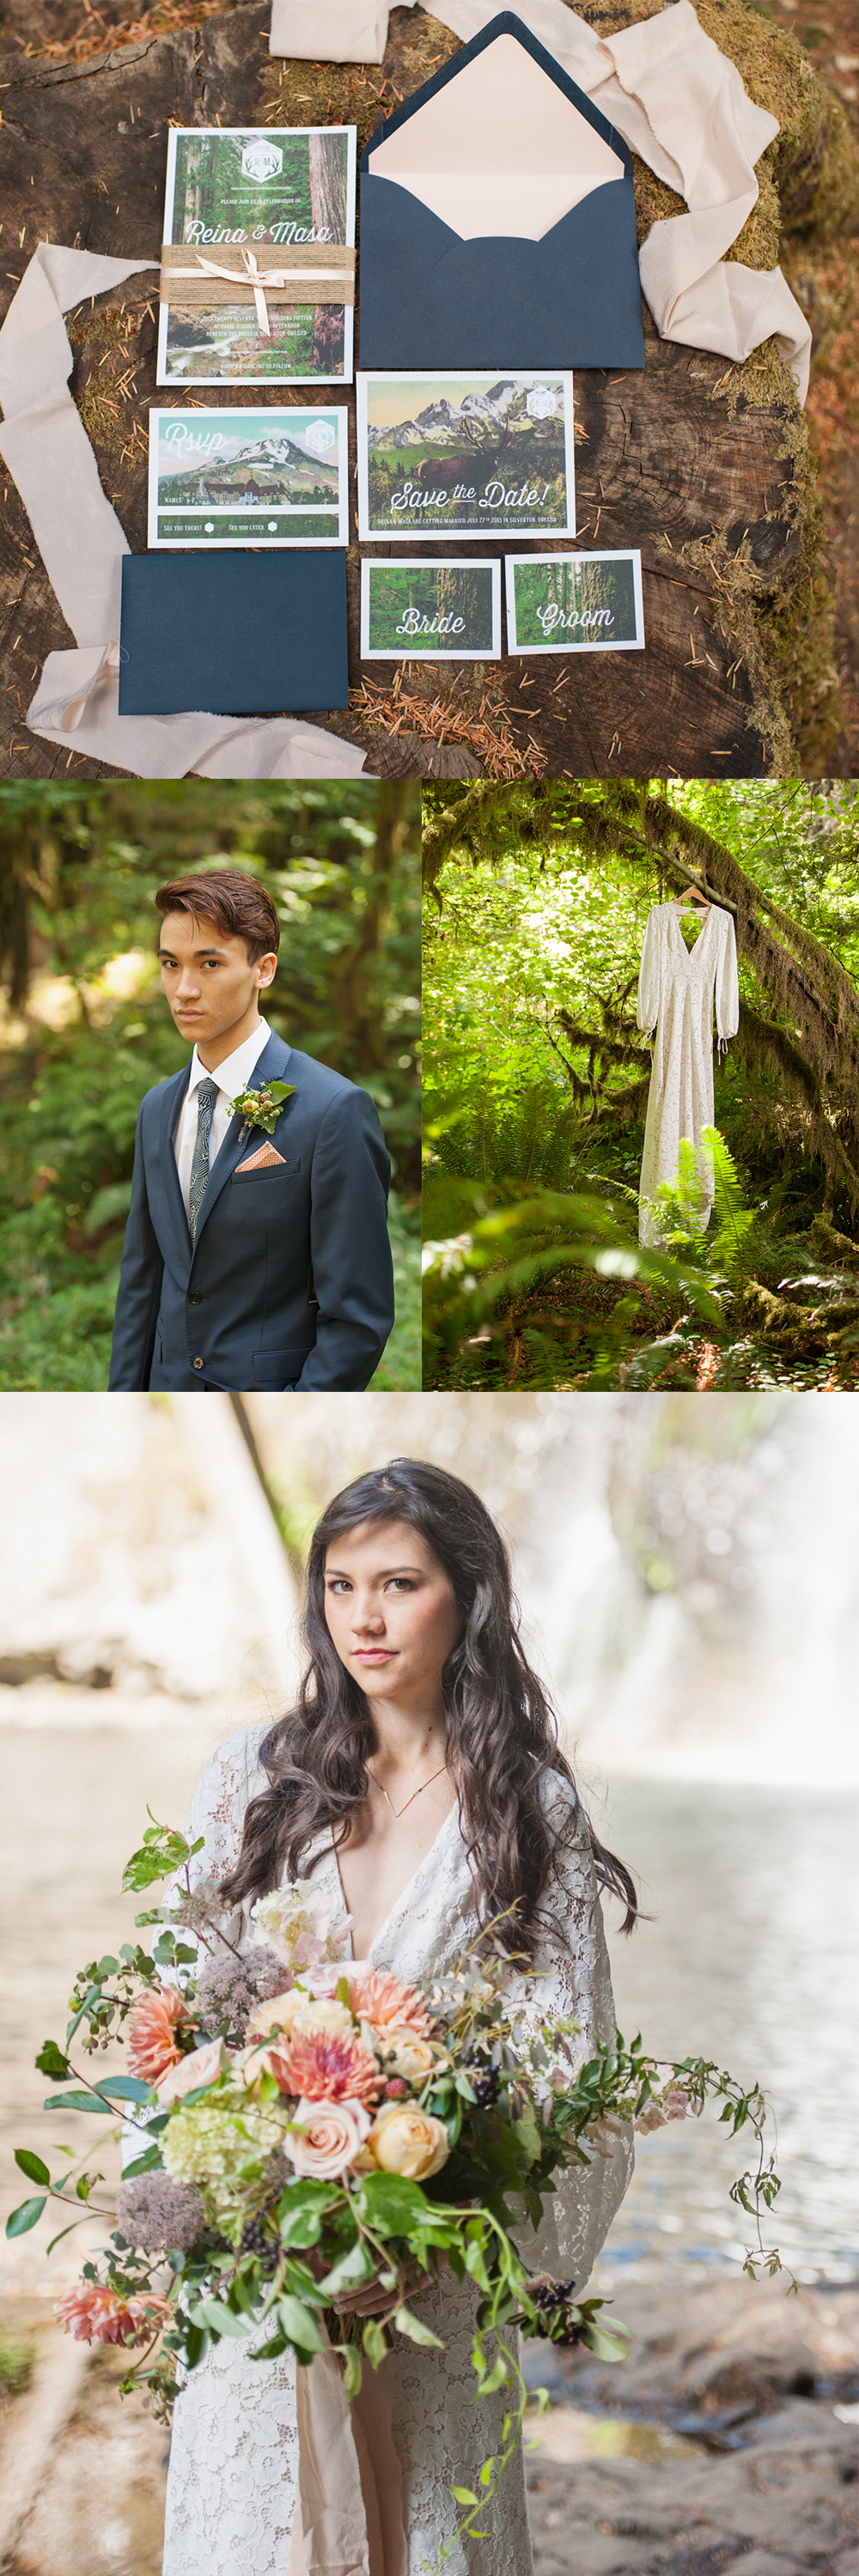 Kimi-Photography-Wedding-Photography-bridal-picture-Portland-Oregon-japanese-photographer